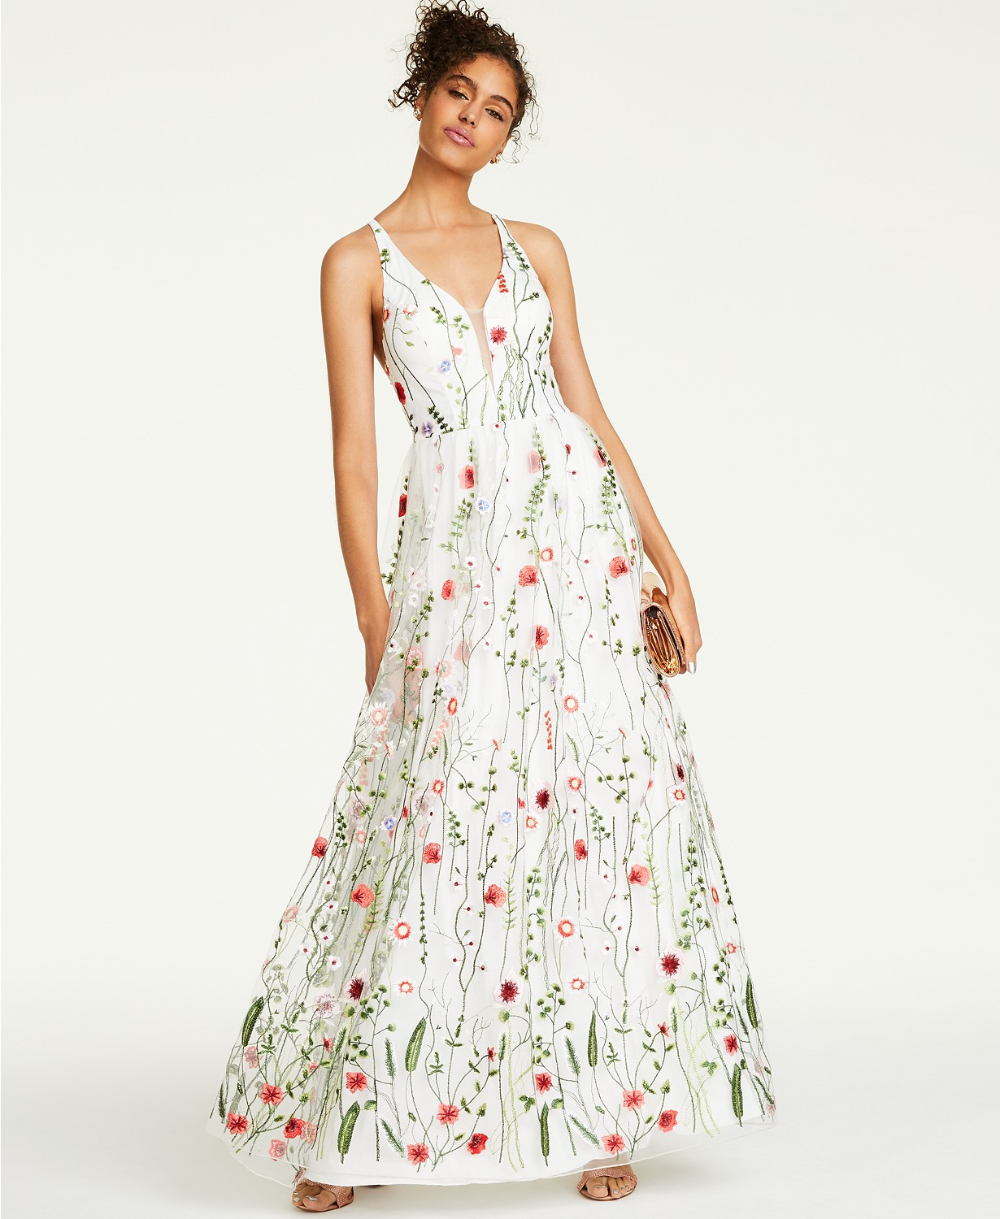 City Studios Juniors Embroidered Strappy Back Gown Created For Macy S Reviews Dresses In 2020 Pretty Dresses Pretty Dresses For Women Formal Dresses For Women,Sophia Tolli Plus Size Wedding Dresses